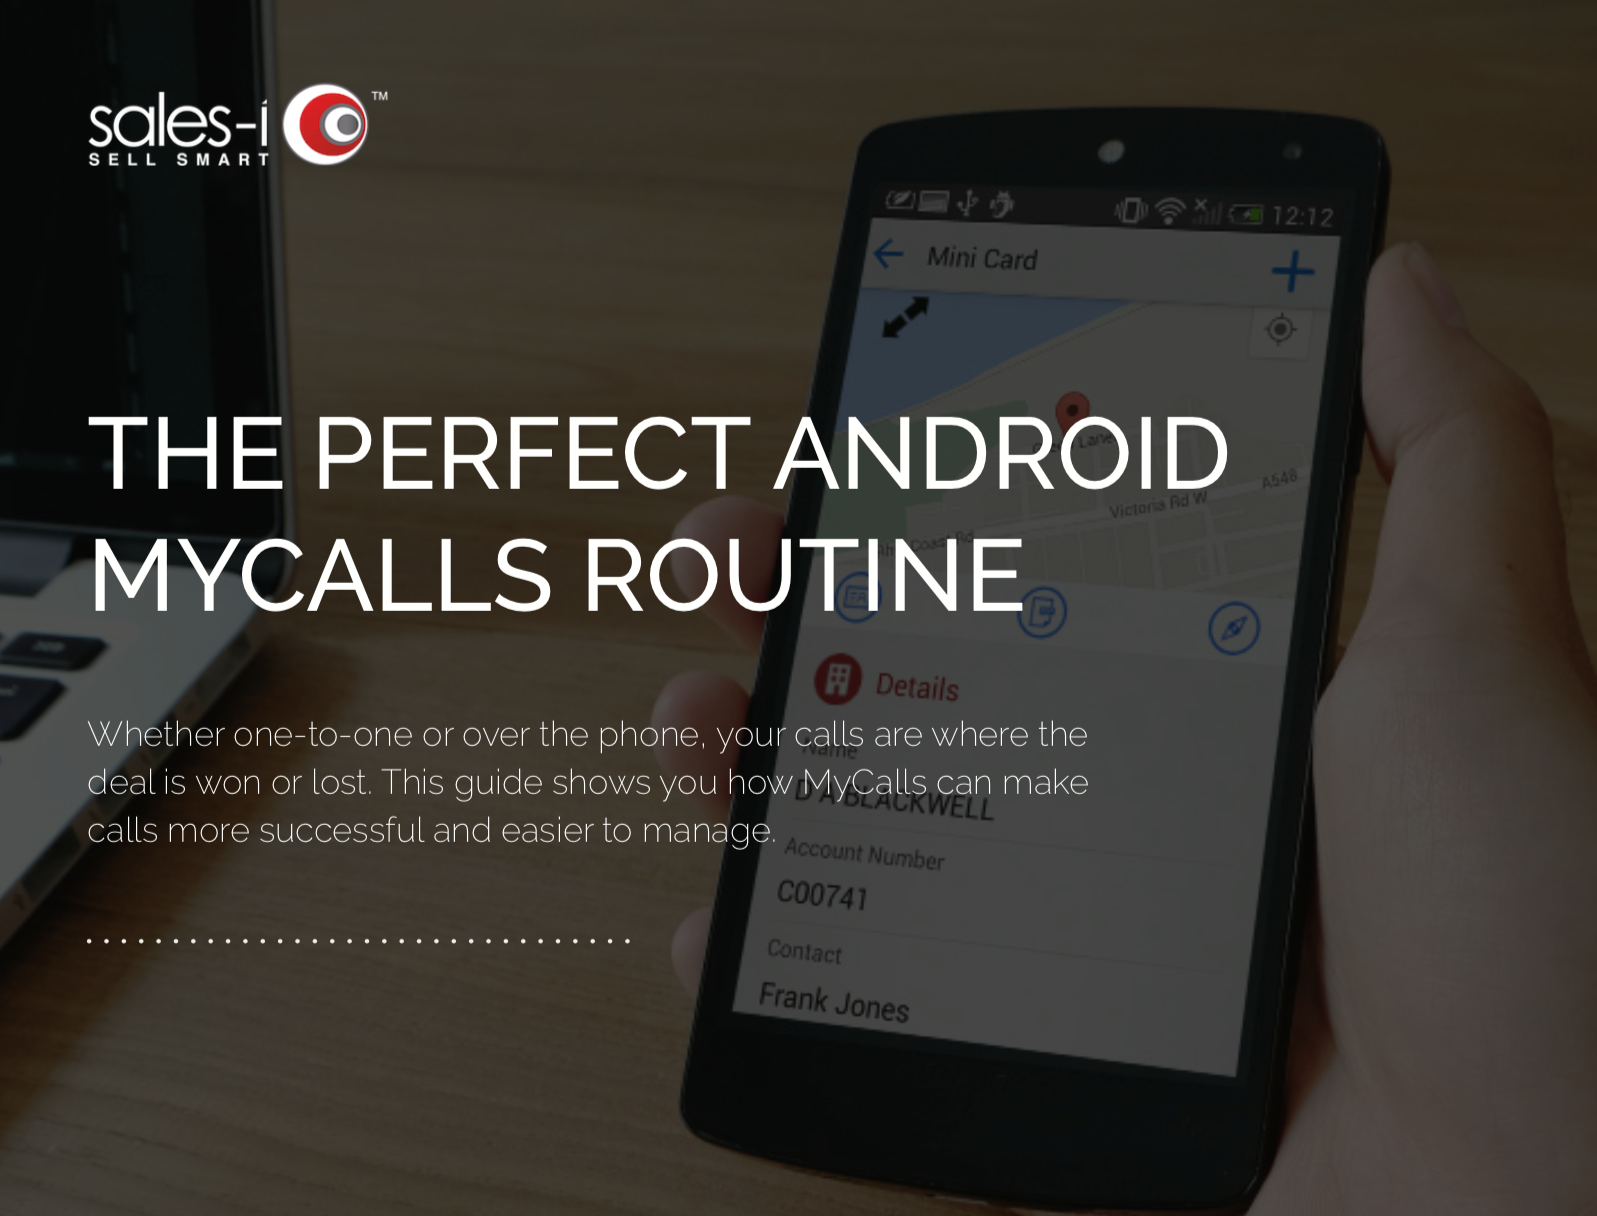 The perfect Android MyCalls routine